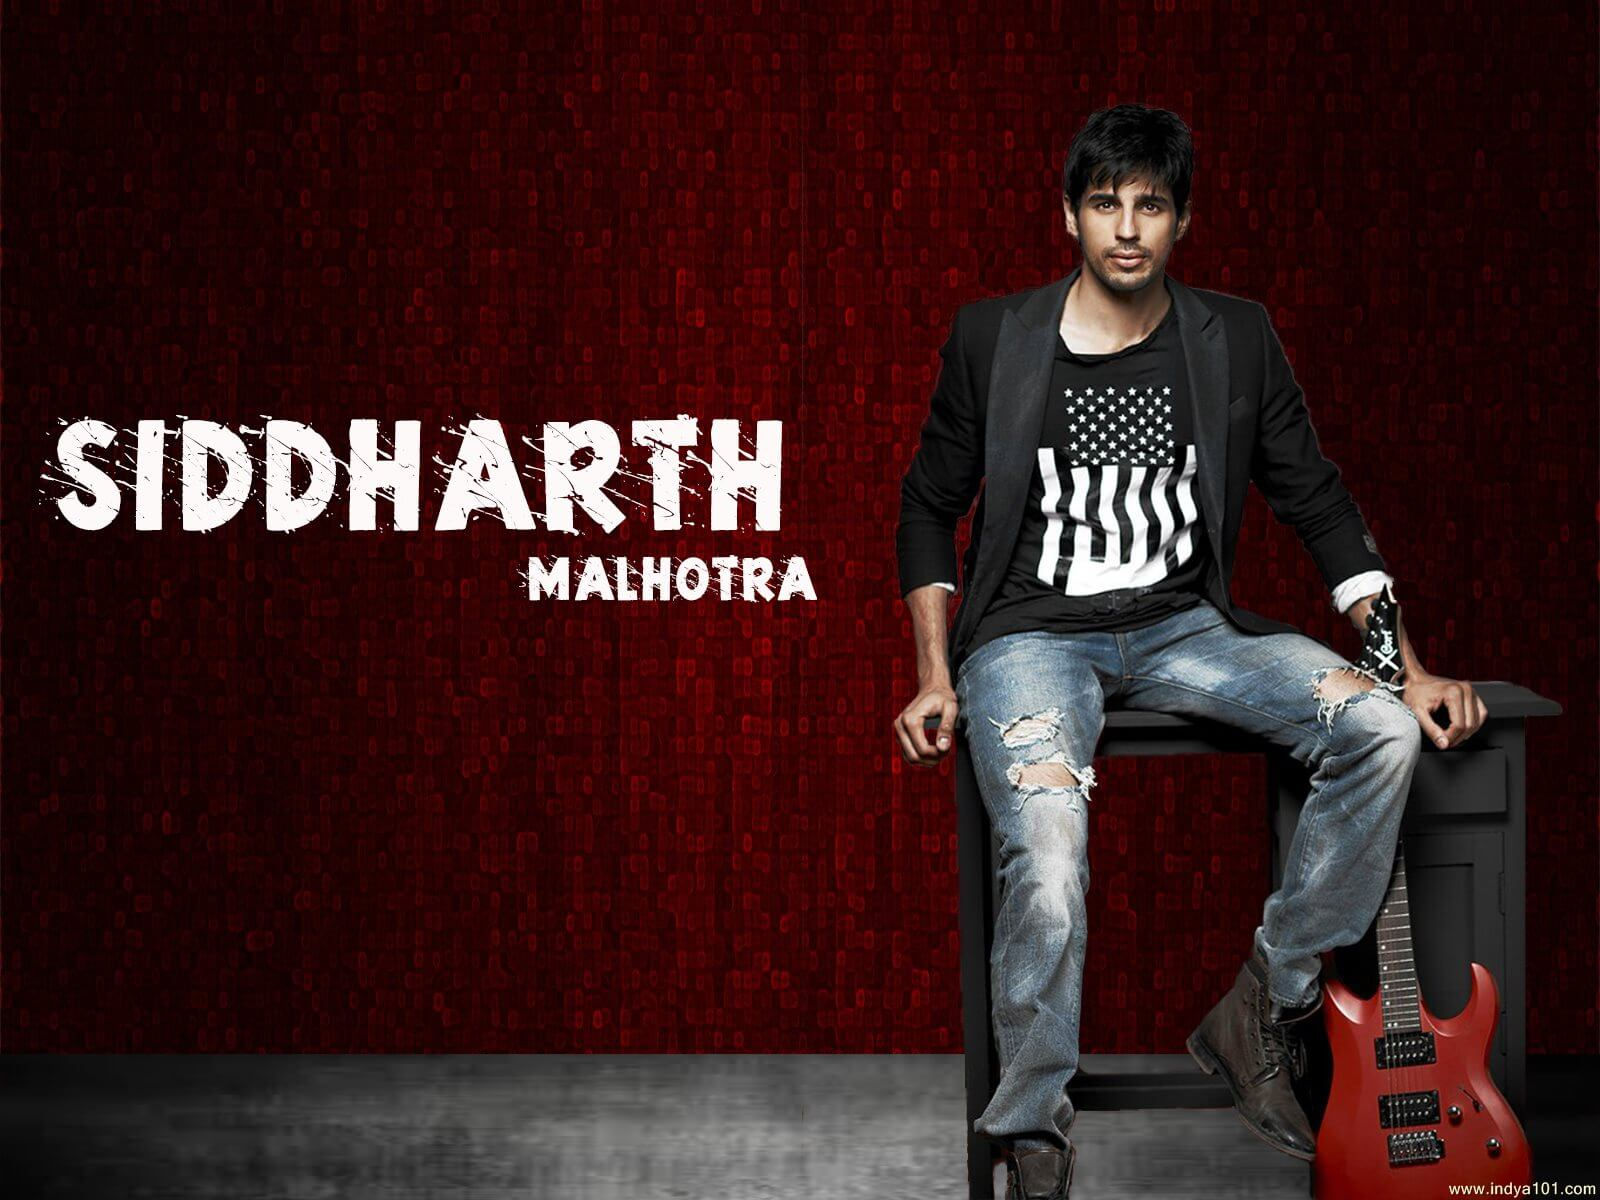 Sidharth Malhotra Movies, Height, Age, Photos, Birth Date, Biography, Girlfriend, Family, Hairstyle, Education, Details, Net Worth, Awards, Wiki, Instagram, Facebook, Imdb, Twitter (14)